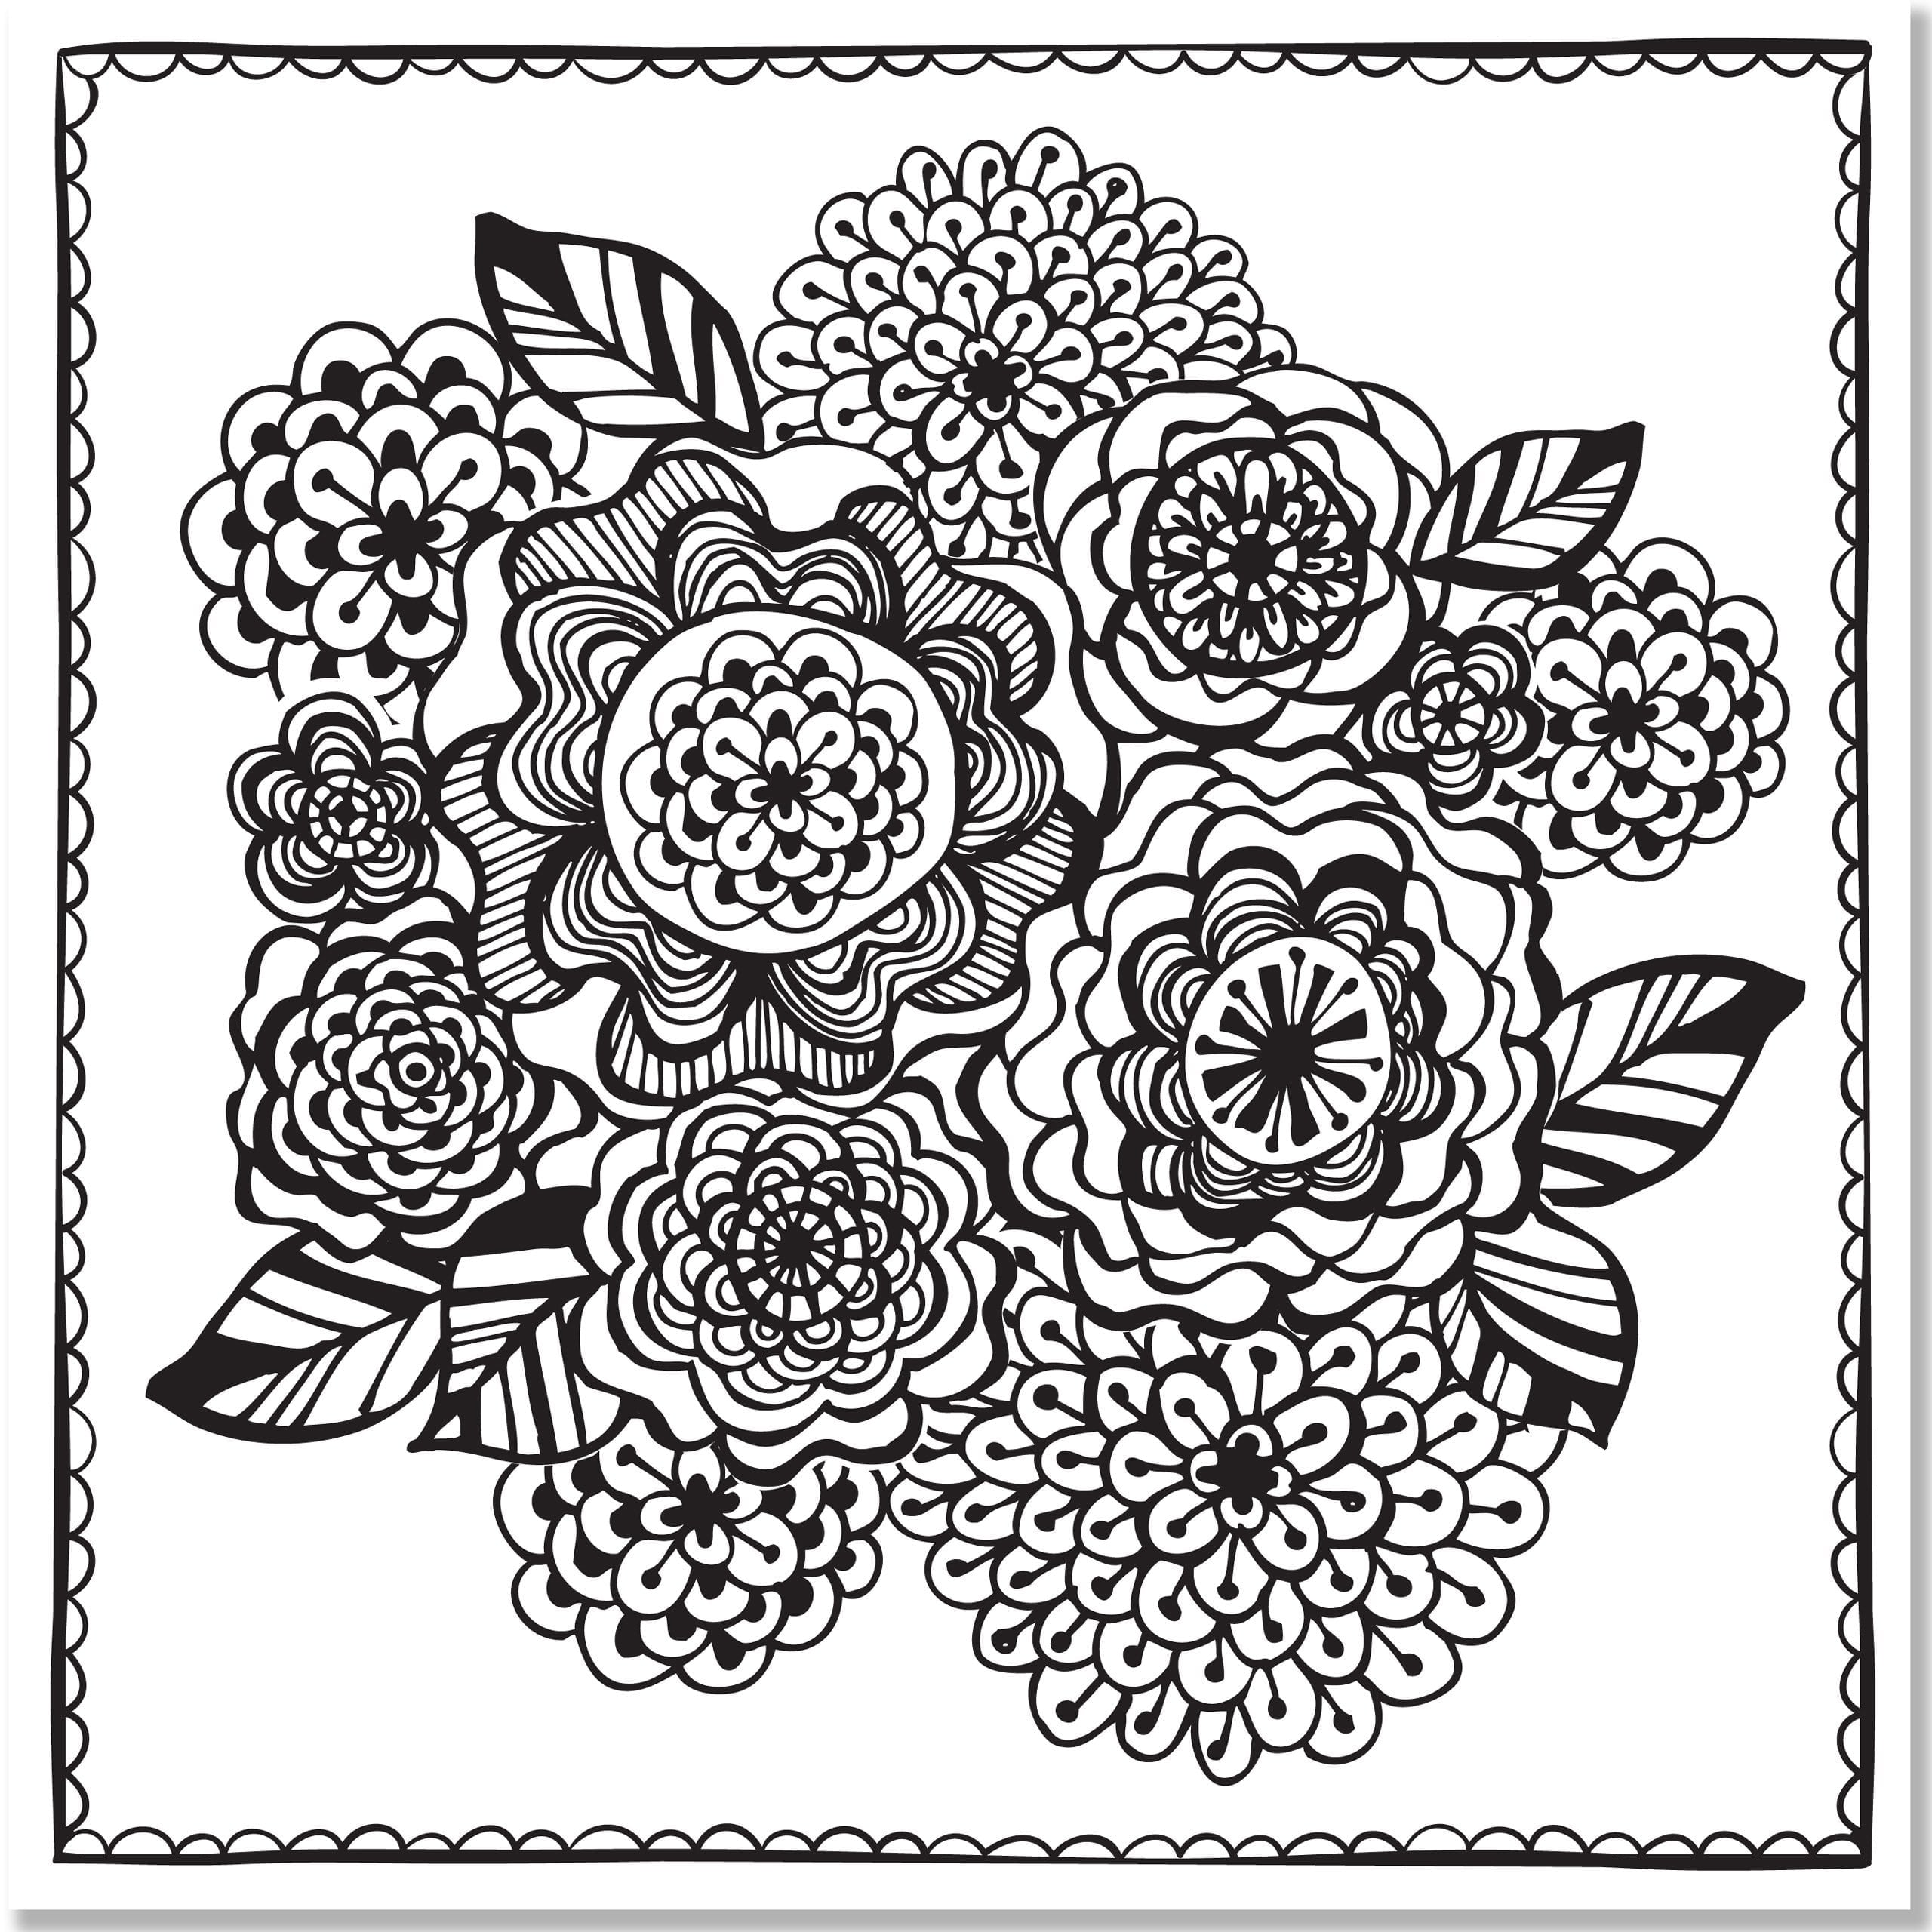 Introducing Designs To Color For Adults Mandala Coloring Book 31